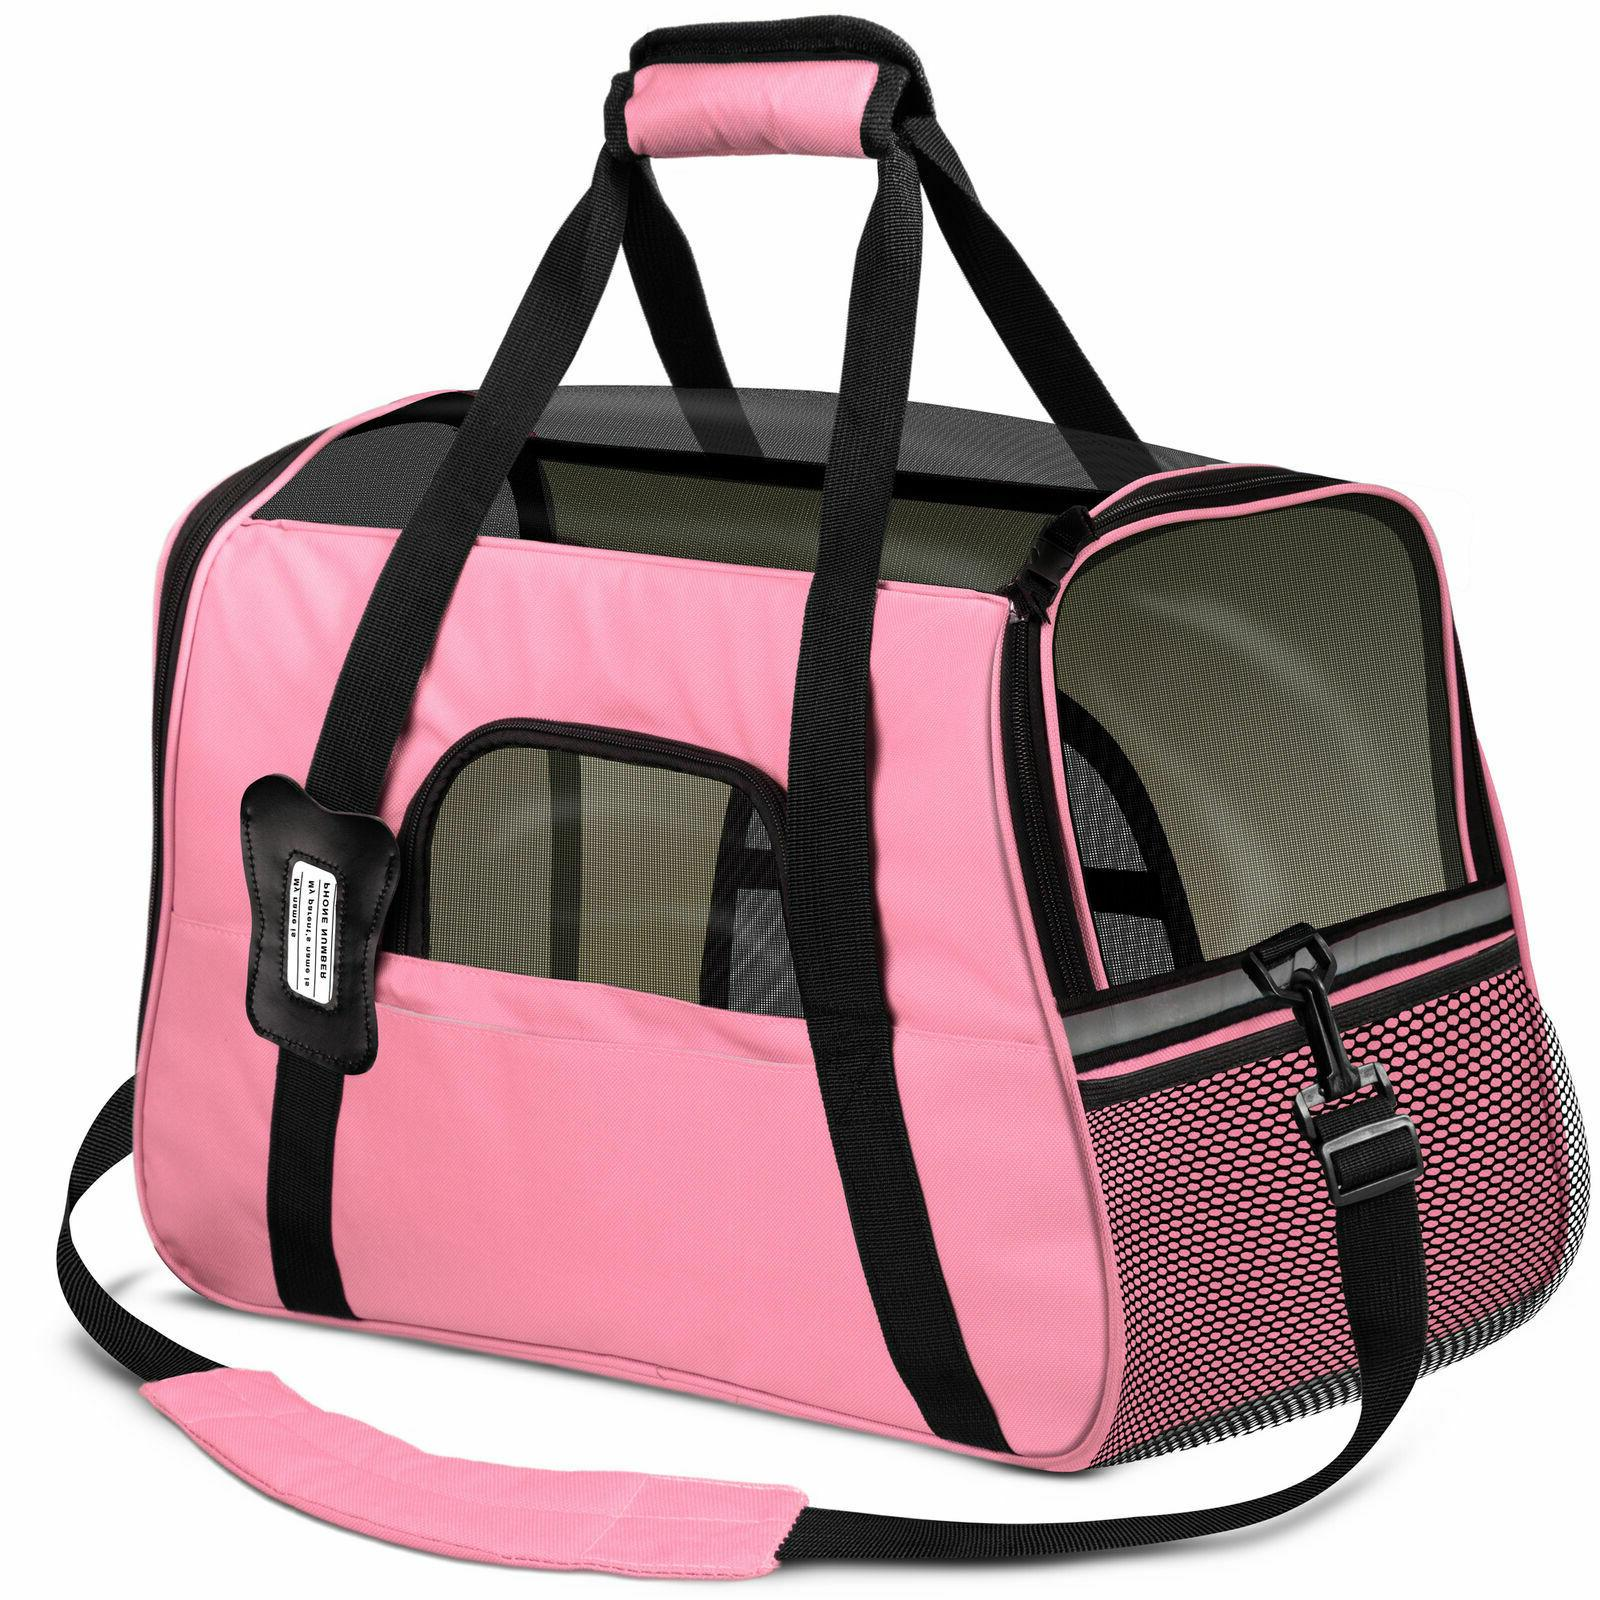 Dog Pet Small Cat Comfort Travel Airline Approved